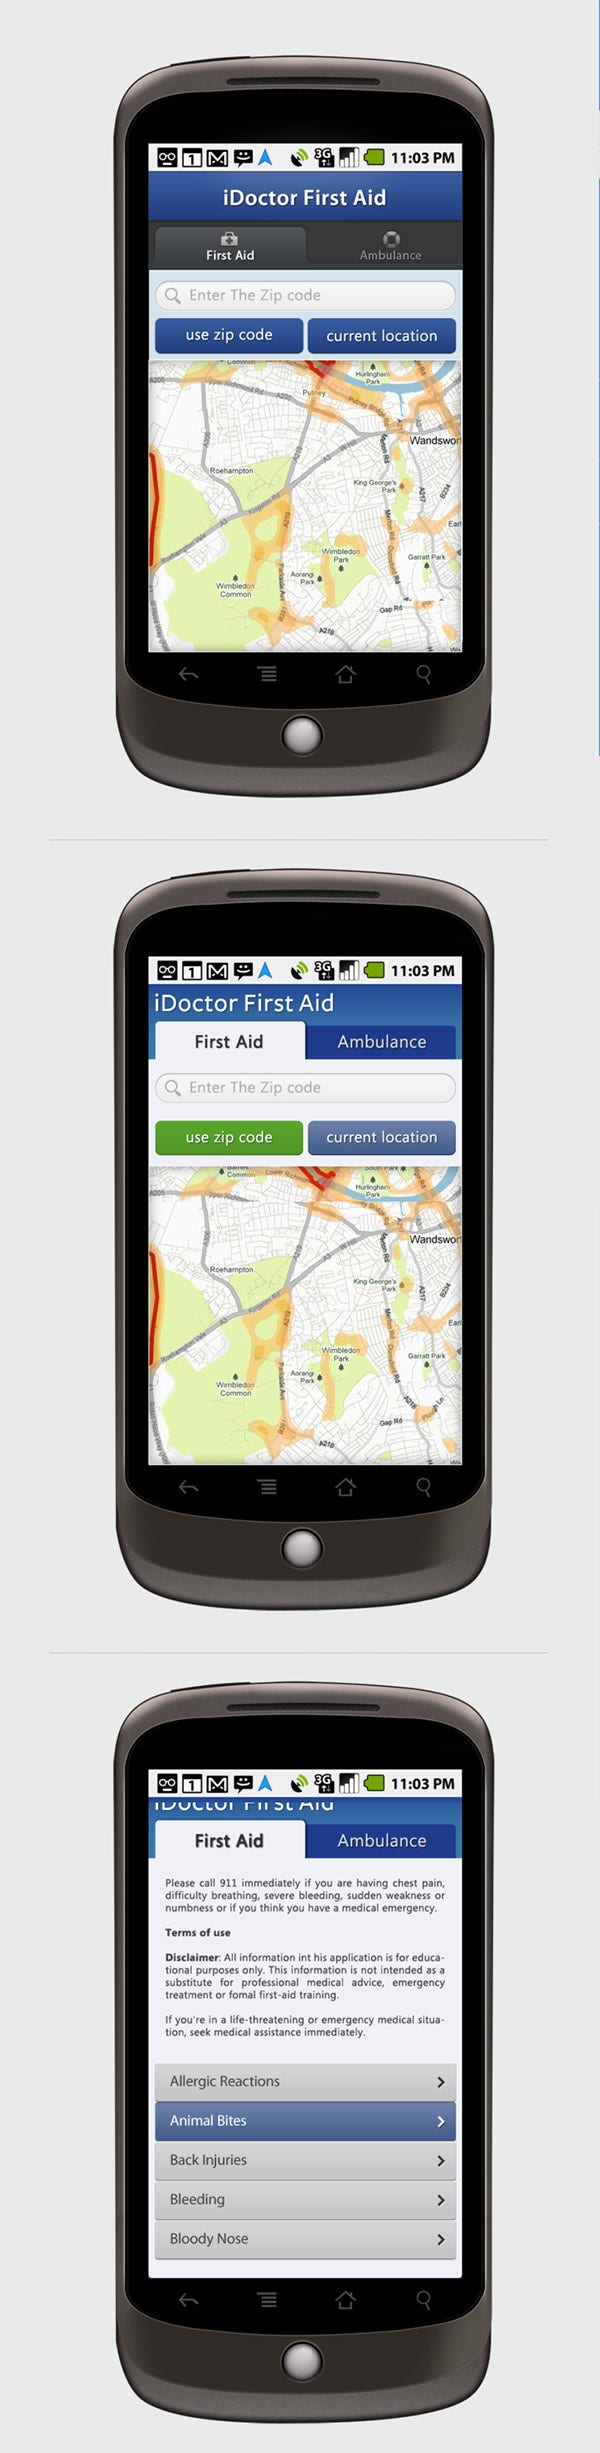 idoctor firstaid android app design